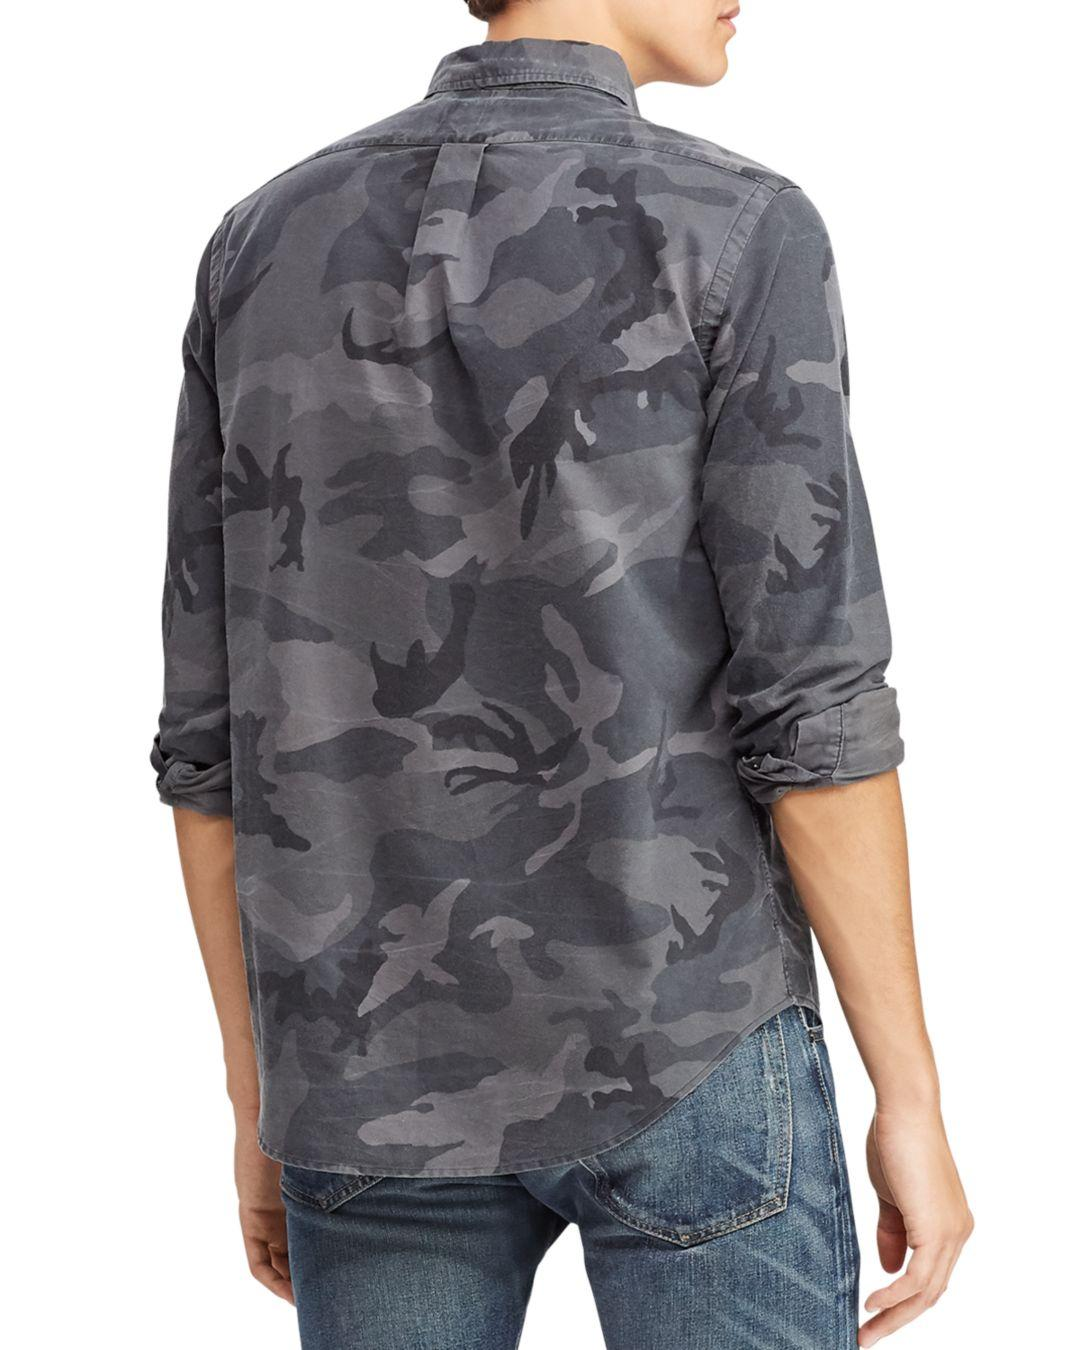 e7d5c13c Polo Ralph Lauren Classic Fit Camo Oxford Shirt in Gray for Men - Save 19%  - Lyst